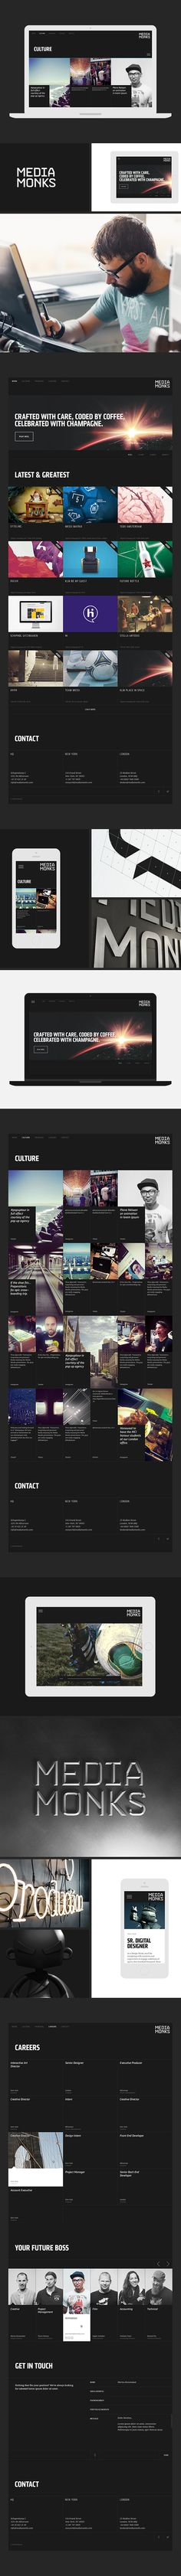 MediaMonks Website on Behance